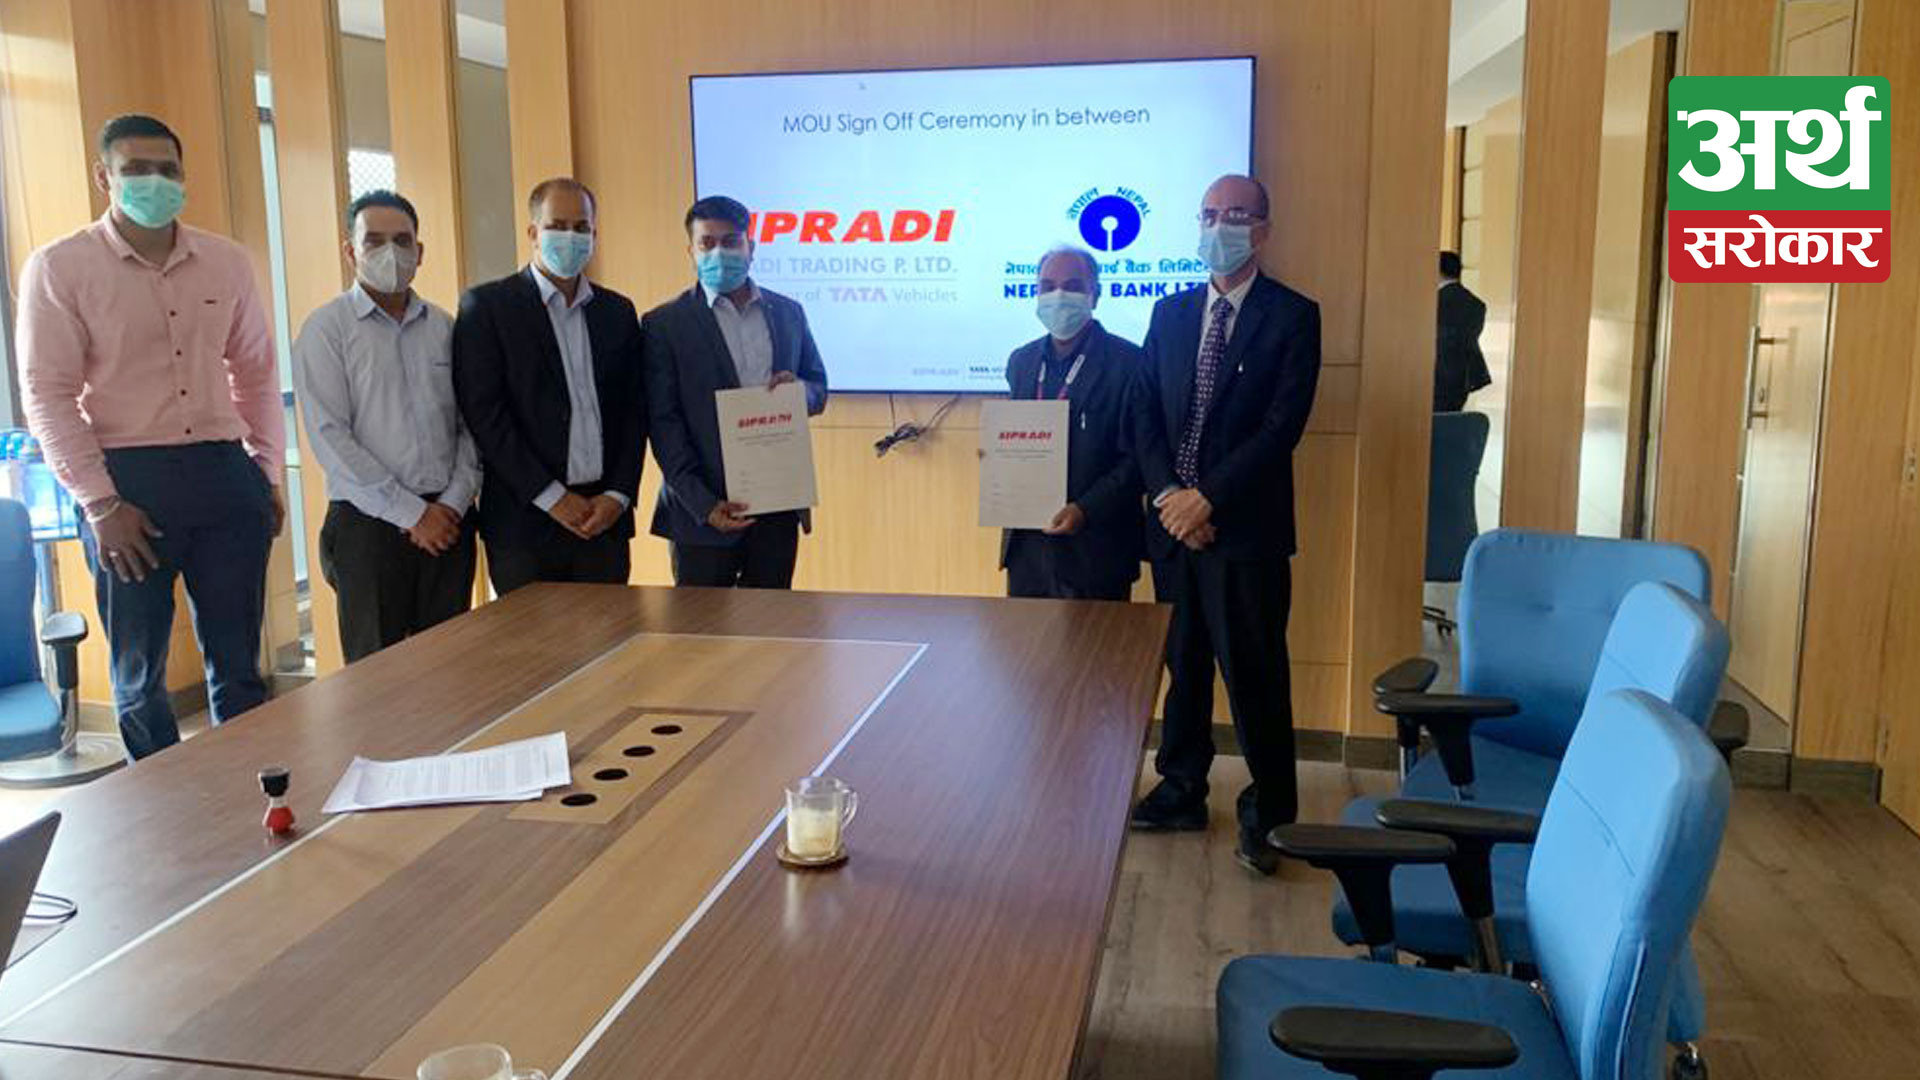 Nepal SBI Bank Limited signs MOU with Sipradi Trading